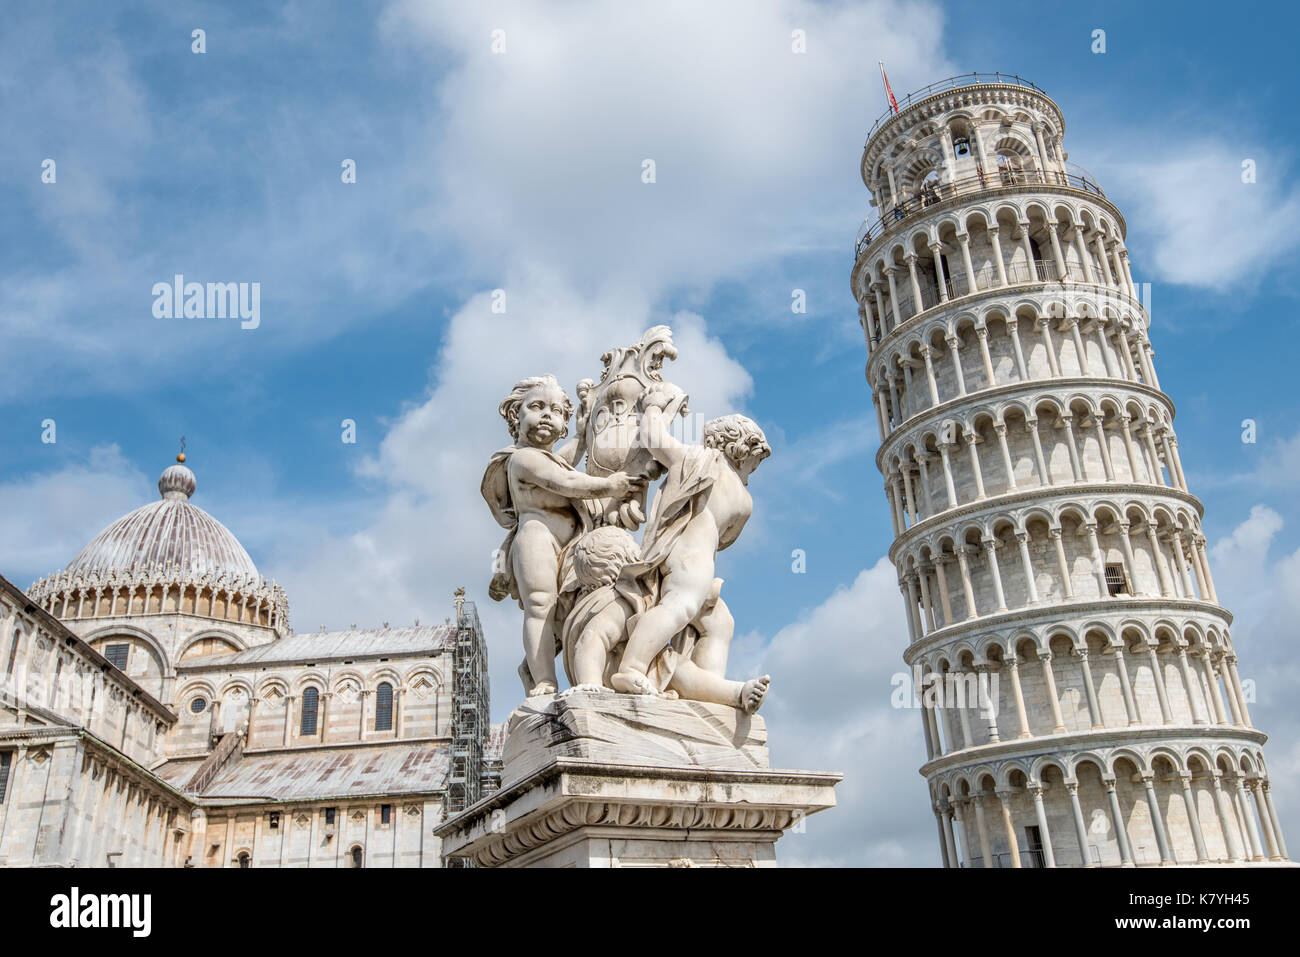 The world famous Piazza dei Miracoli in Pisa, Tuscany.  The construction of the cathedral was began in 1064. Stock Photo